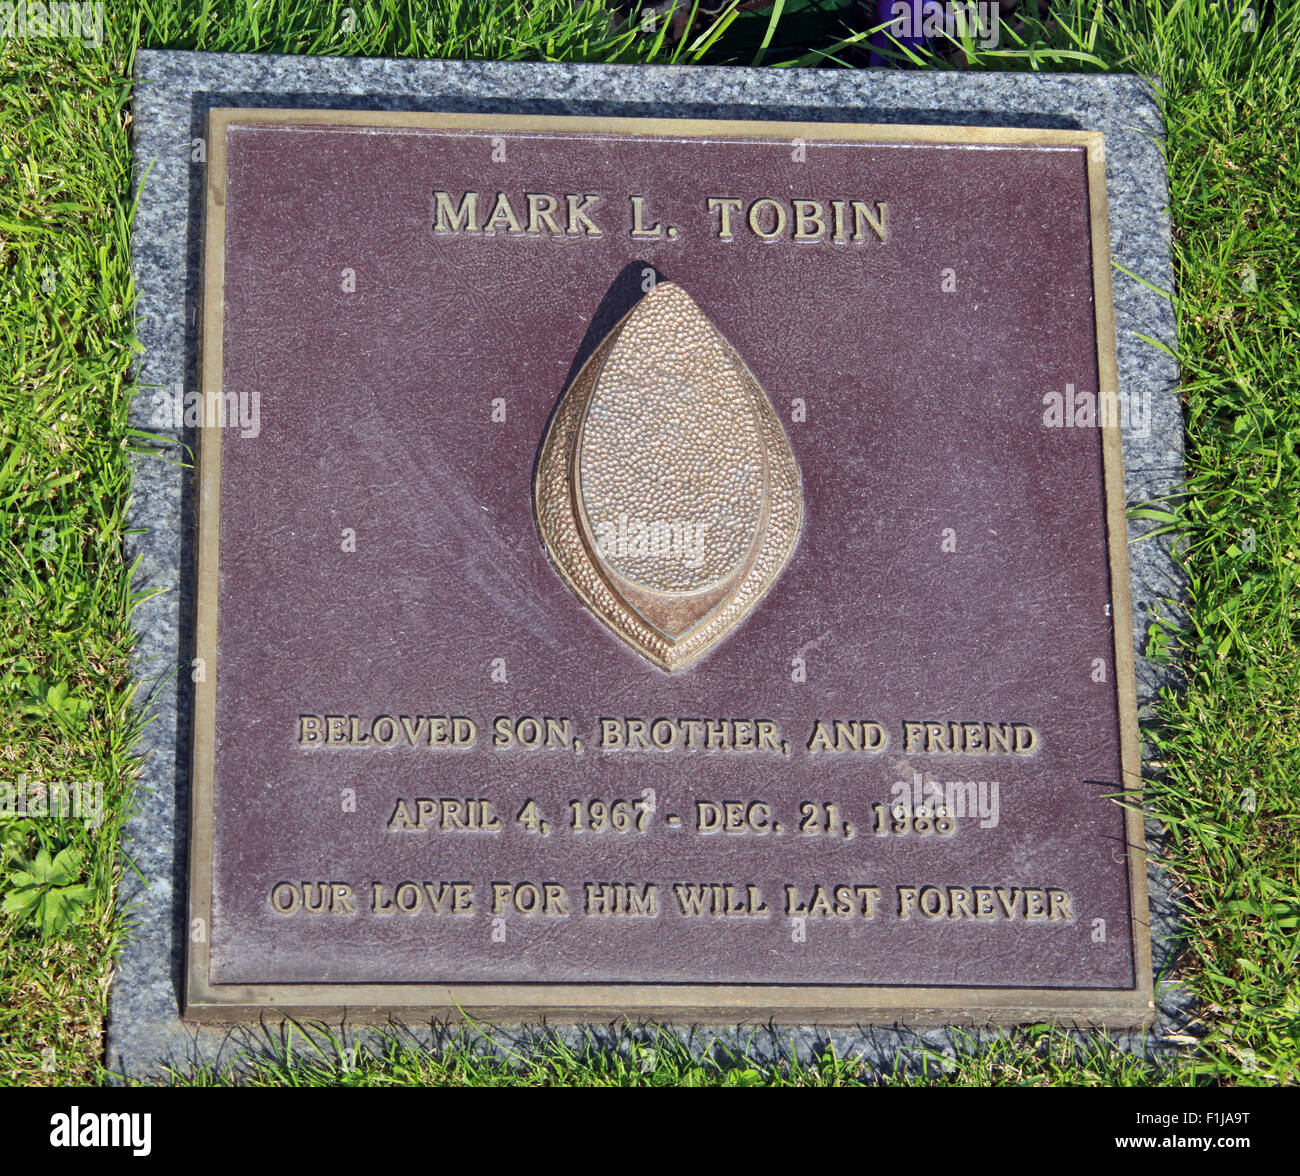 Tobin,Lodge,Visitors,Centre,DLVC,Trust,Lockerbie,Memorial,Remembrance,Scotland,Victims,Pan,Am,PanAm,flight,103,bomb,bombing,terrorist,December,1988,attack,crash,dead,site,21/12/1988,270,victims,Scottish,Town,conspiracy,blast,Tundergarth,Room,garden,of,Dryfesdale,Cemetery,news,Cultural,un,New York,GoTonySmith,Lodge,Visitors,Centre,DLVC,Trust,Lockerbie,Memorial,Scotland,Victims,Pan,Am,PanAm,flight,103,bomb,bombing,terrorist,December,1988,attack,crash,dead,site,21/12/1988,270,victims,Scottish,Town,conspiracy,blast,Tundergarth,Room,garden,of,Dryfesdale,Cemetery,news,Cultural,understanding,remembering,innocent,transatlantic,Frankfurt,Detroit,Libyan,Libya,Colonel Muammar Gaddafi,civil,case,compensation,terrorism,PA103,30,30years,years,Syracuse,University,SU,family,collections,Story,Archive,Archives,40,35,Timeline,saga,disaster,air,Scholars,program,programs,remembrance,Clipper Maid of the Seas,N739PA,Boeing,727,plane,aircraft,Scotland,UK,United Kingdom,GB,Great Britain,resting,place,Buy Pictures of,Buy Images Of,New York,al megrahi,30 Years